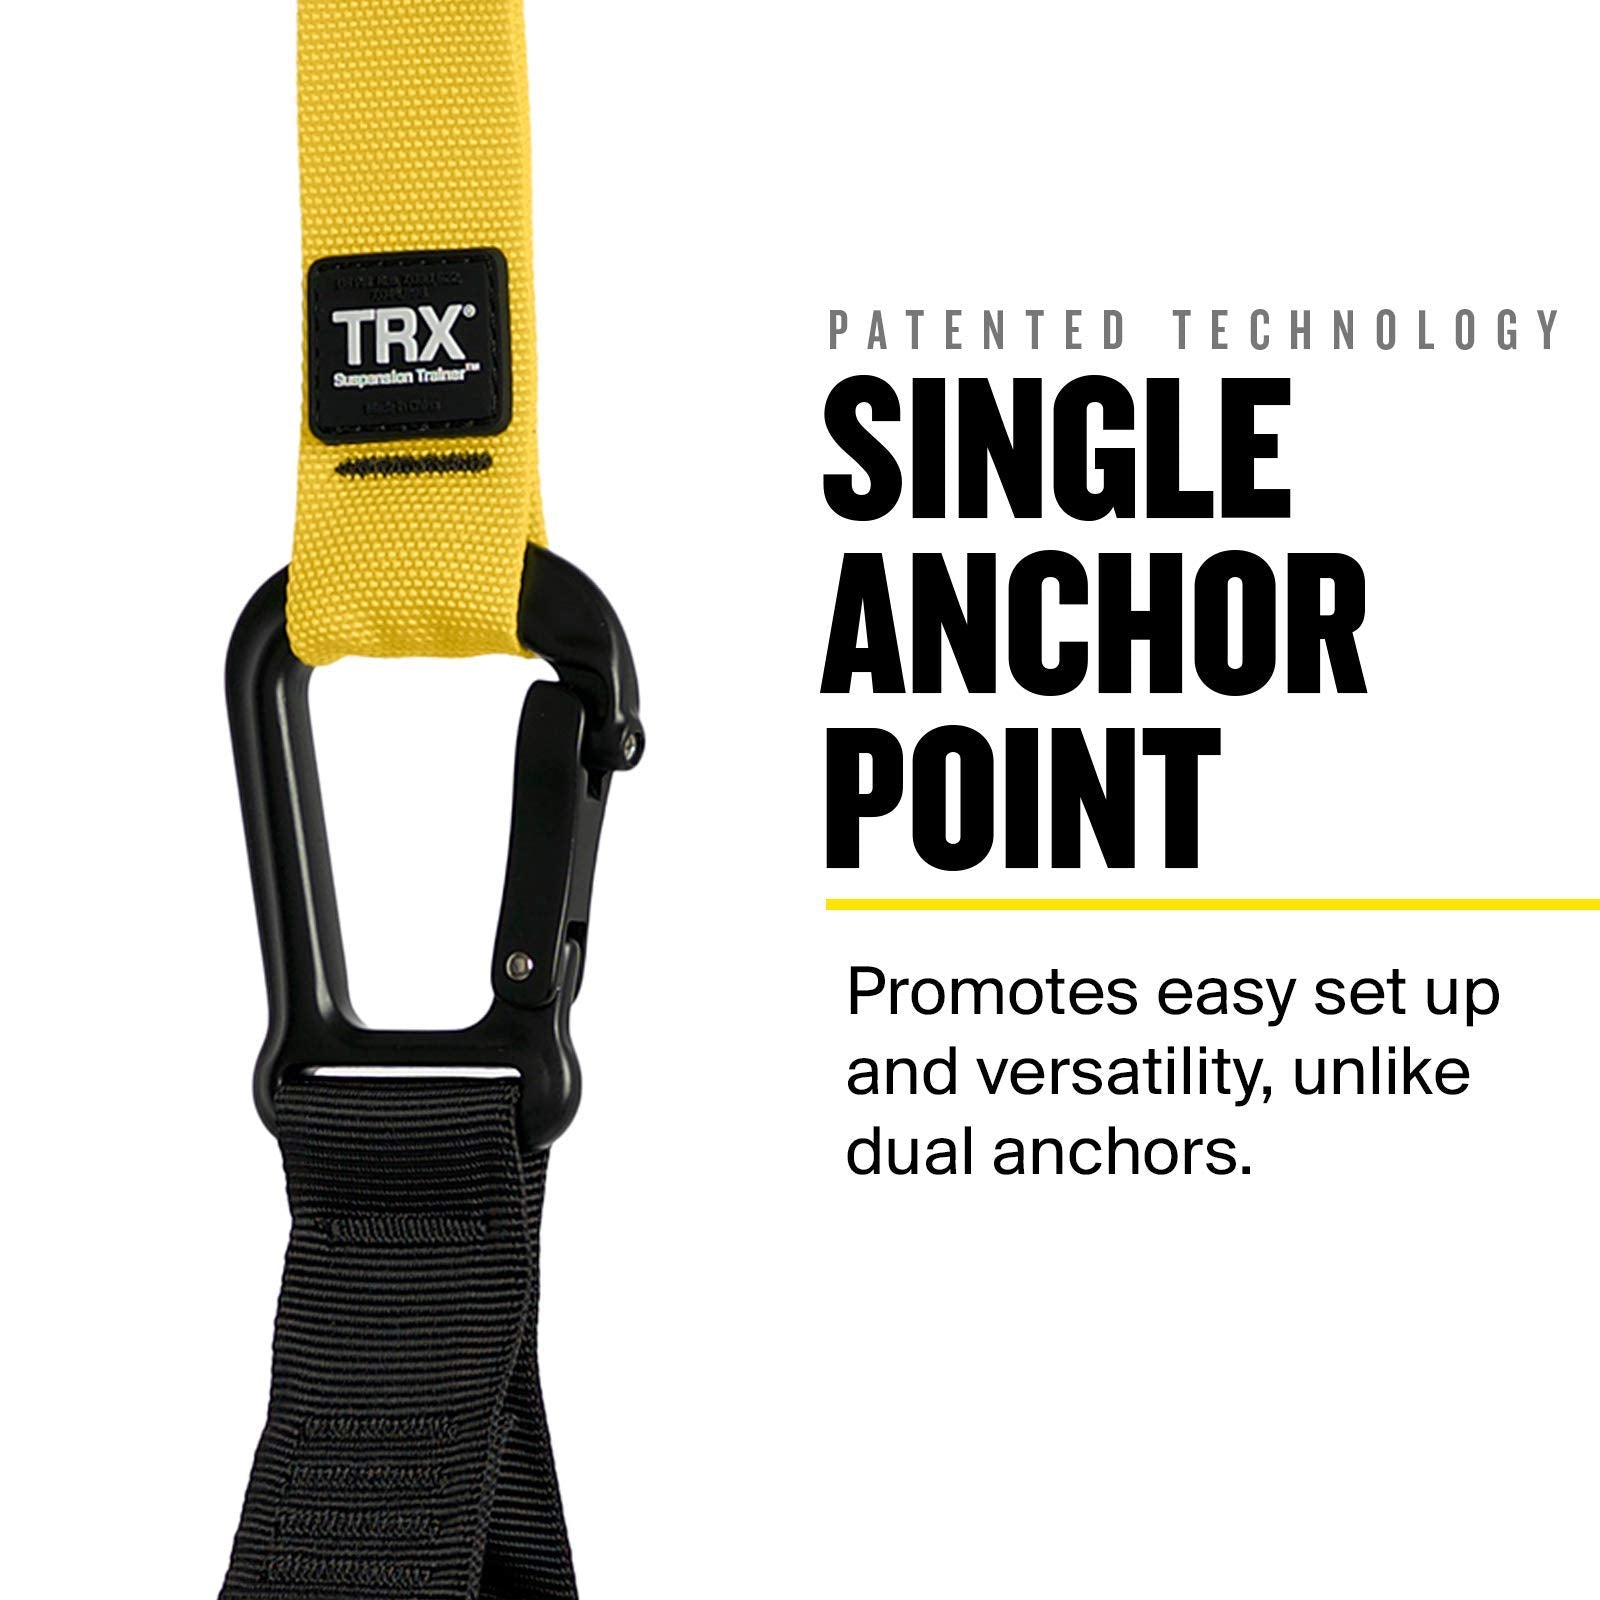 TRX PRO3 Suspension Trainer System Design & Durability| Includes Three Anchor Solutions, 8 Video Workouts & 8-Week Workout Program - yrGear Australia